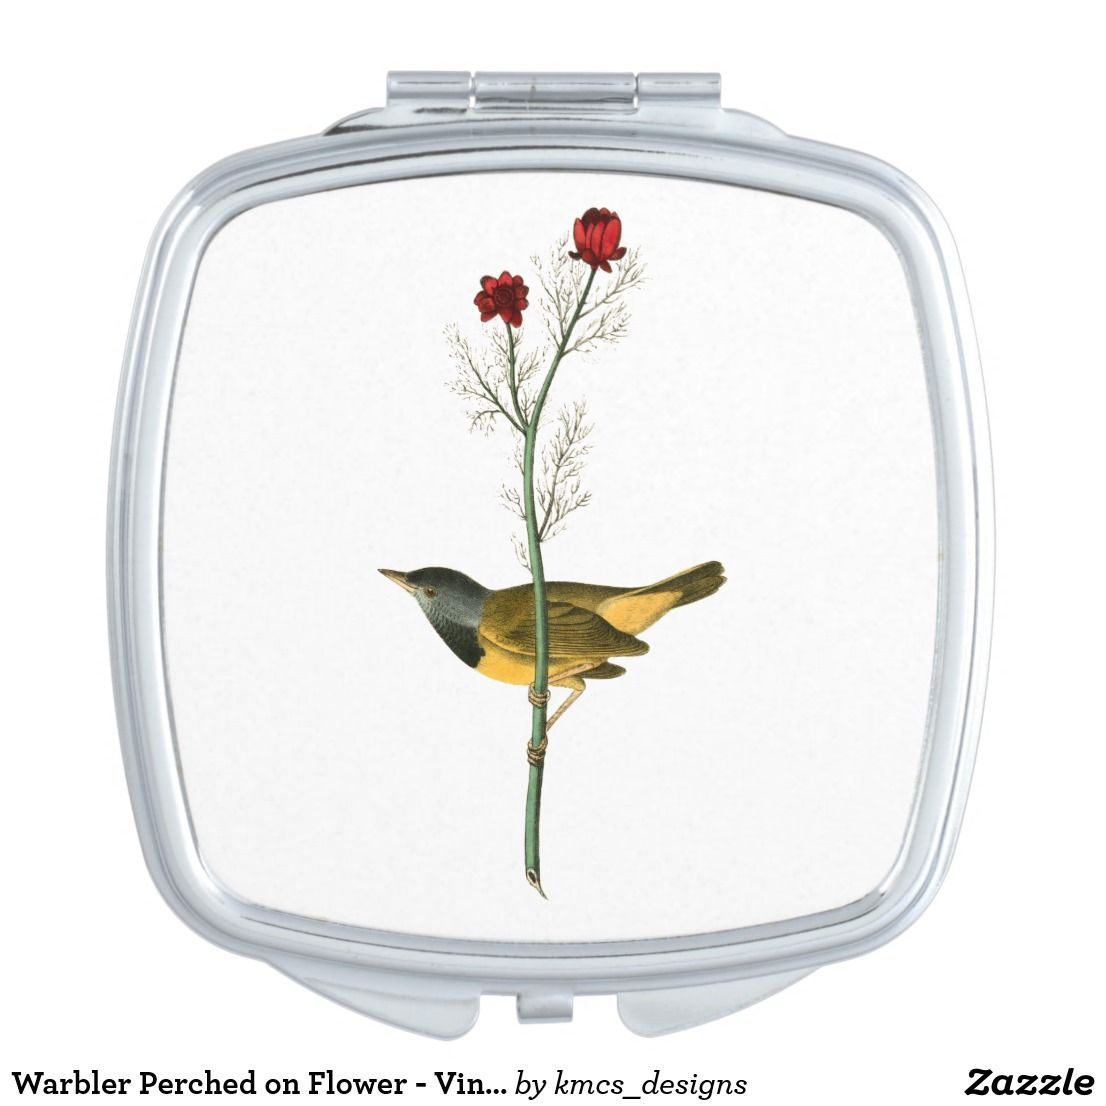 Warbler Perched On Flower Vintage Drawing Compact Mirror Compact Mirror Vintage Drawing Mirror